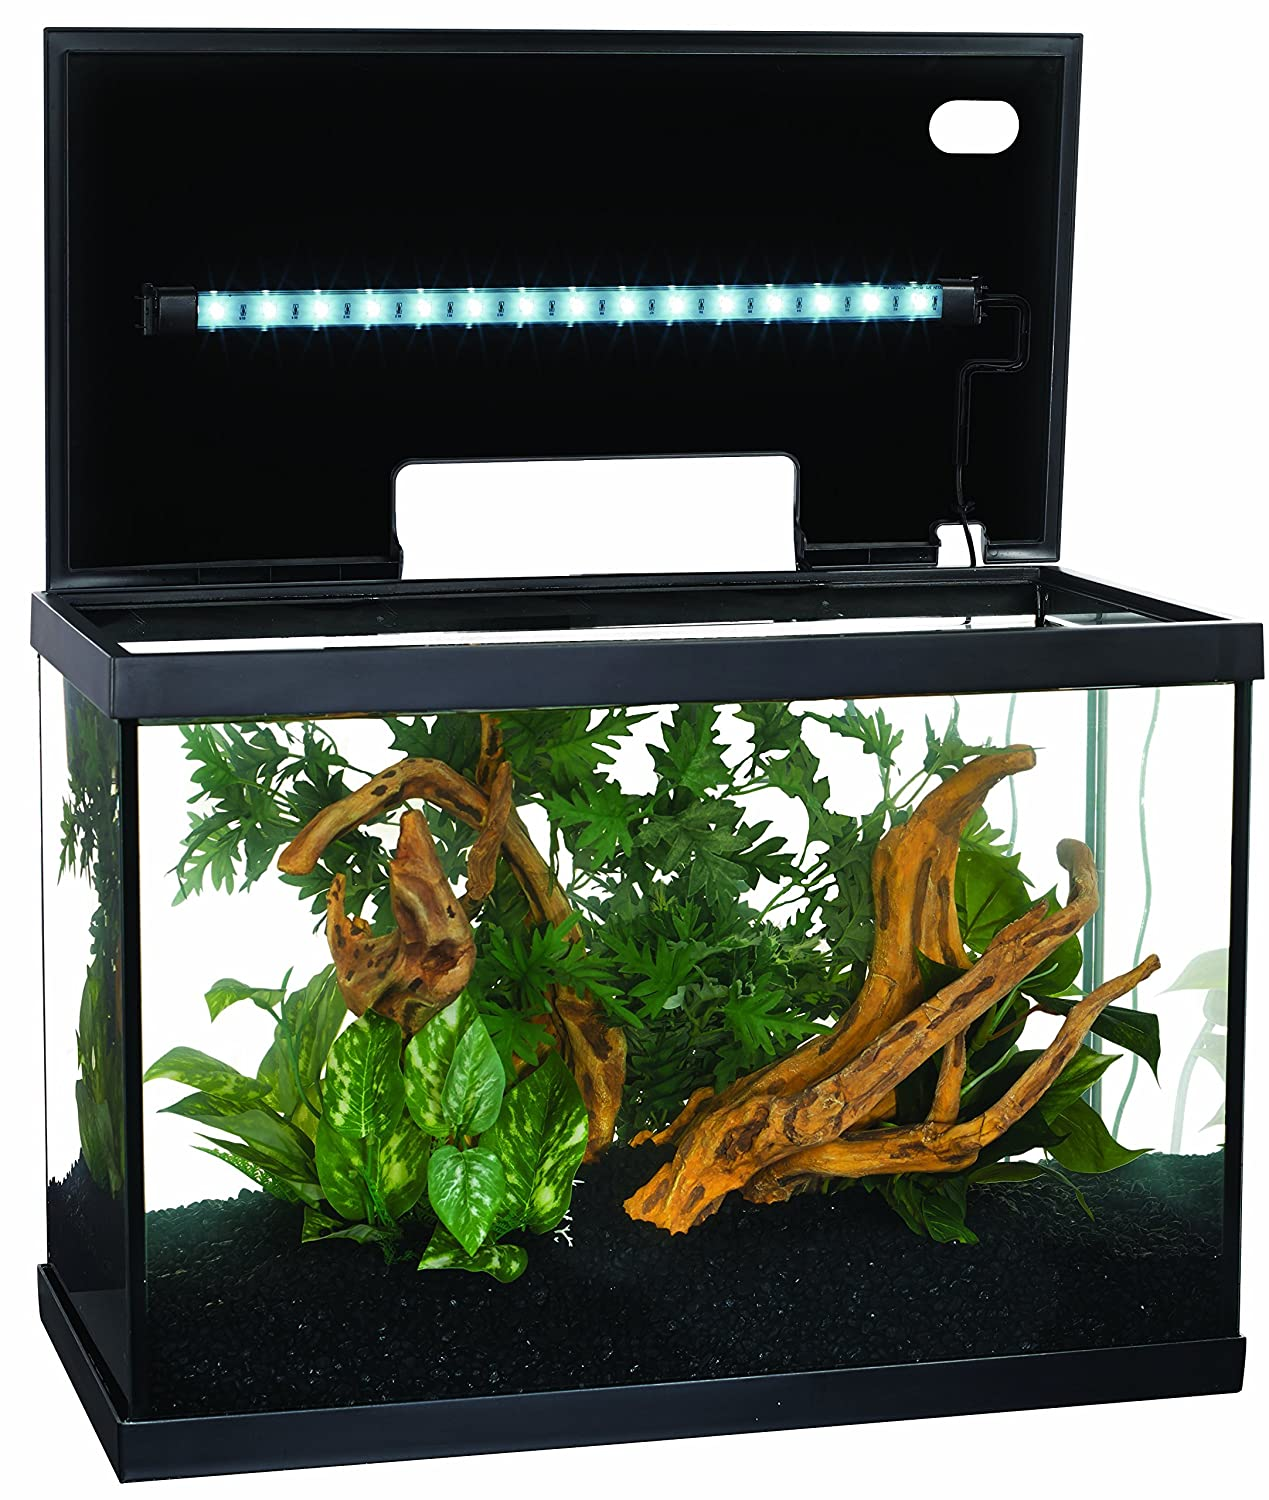 Marina led glass aquarium kit 10 gallon fish tank brand for Fish for a 10 gallon tank